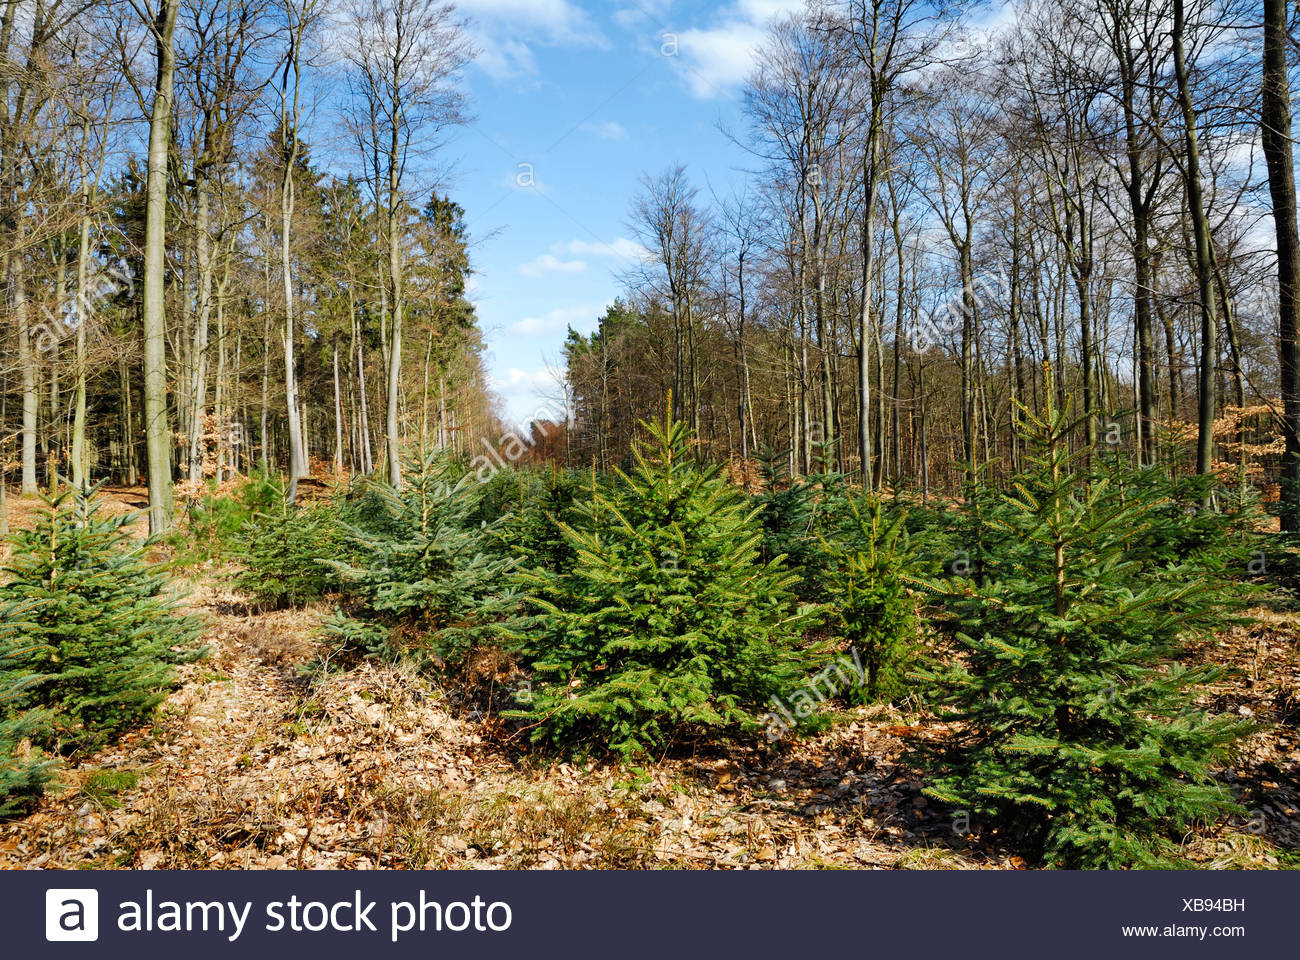 Norway spruce (Picea abies), young spruces in mixed forest, Germany, Schleswig-Holstein - Stock Image